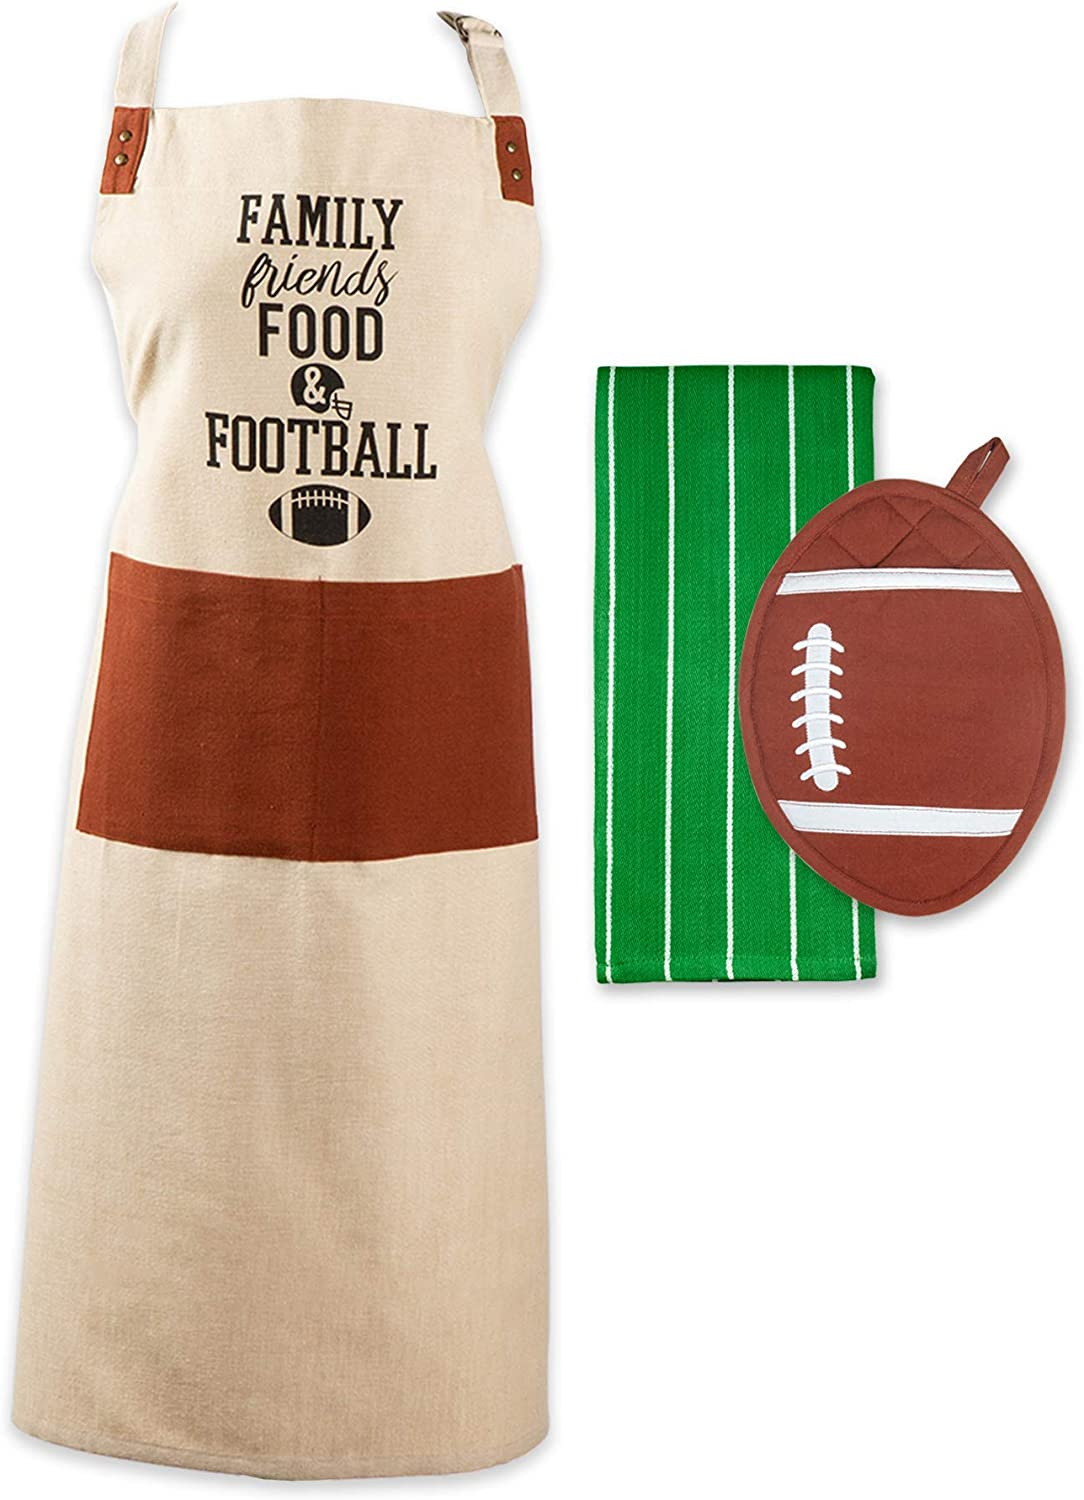 DII Everything Football Kitchen Collection, Set, Family, Friends, Food 3 Piece